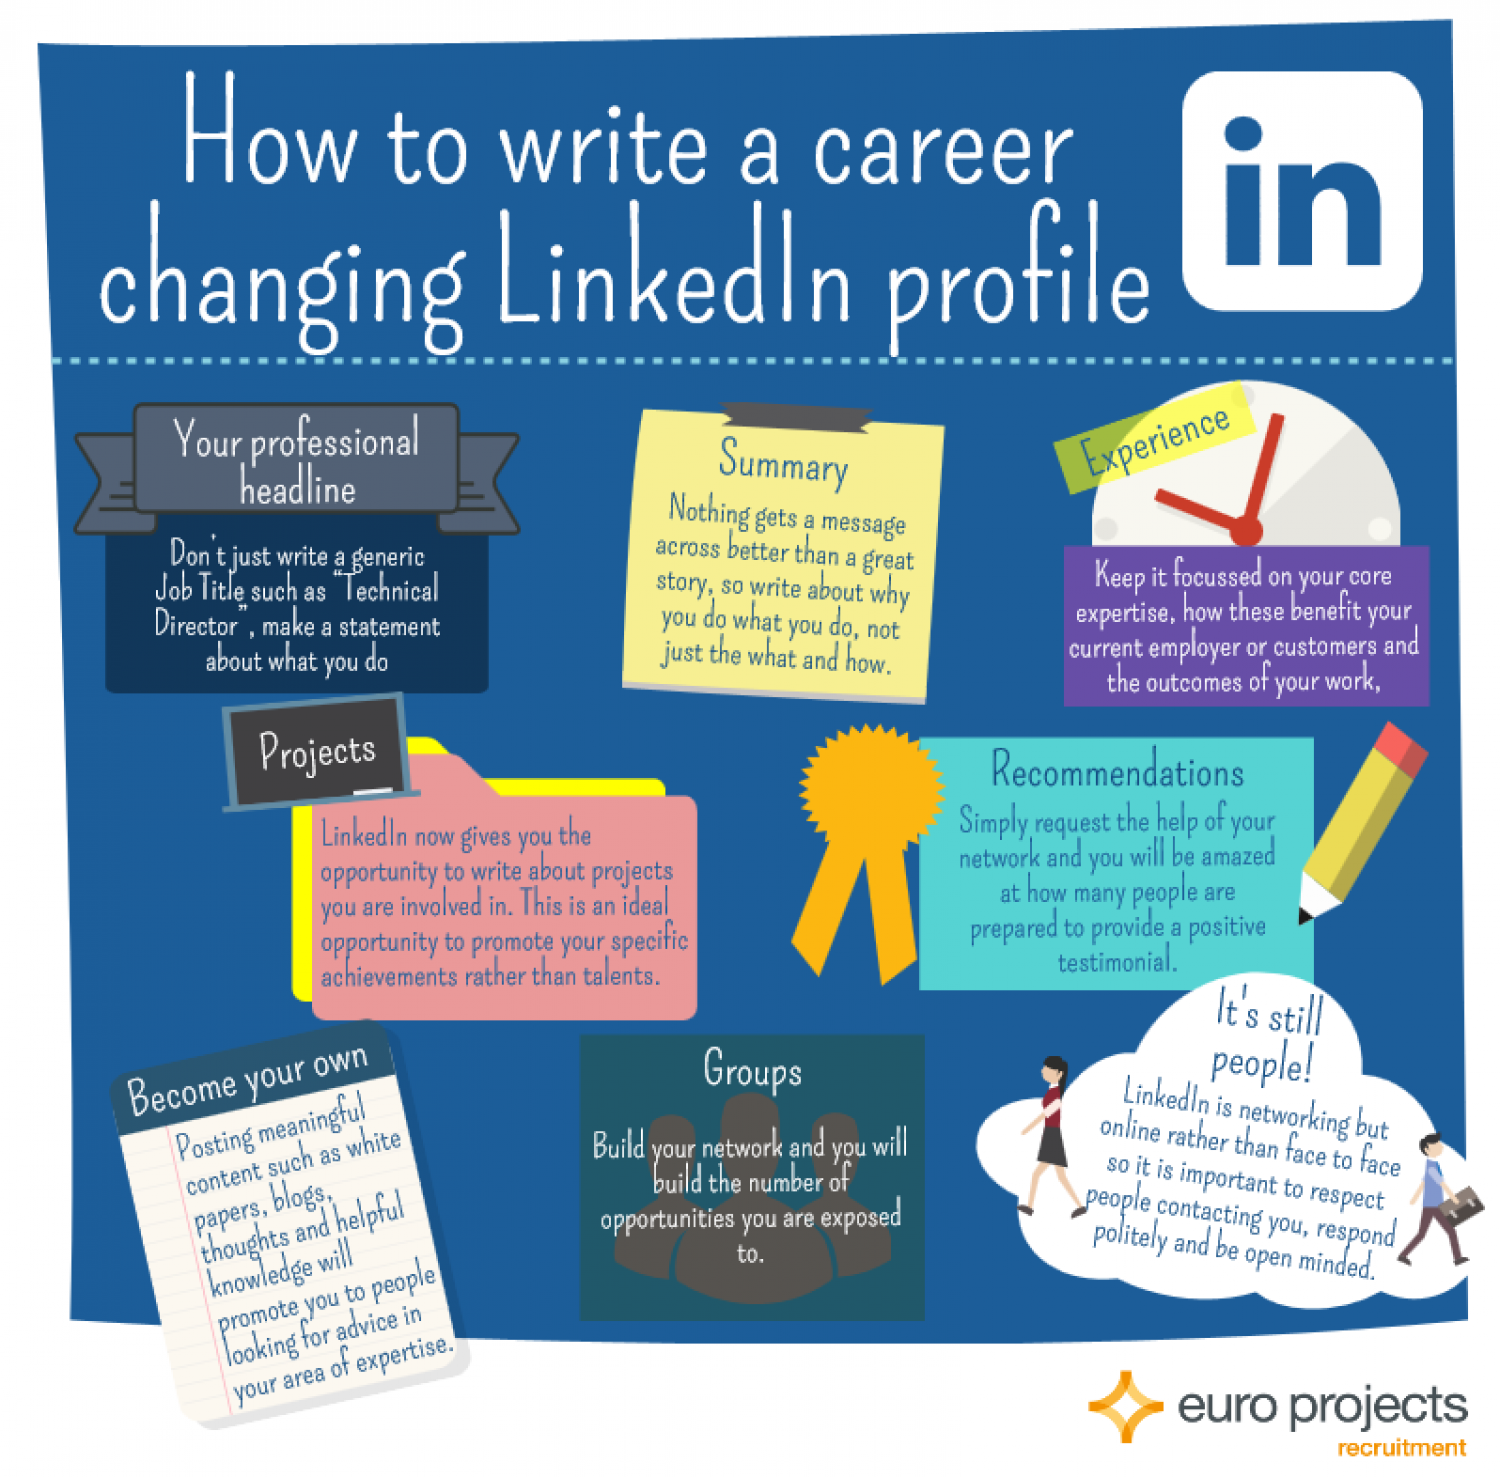 how to write a career changing linkedin profile ly how to write a career changing linkedin profile infographic